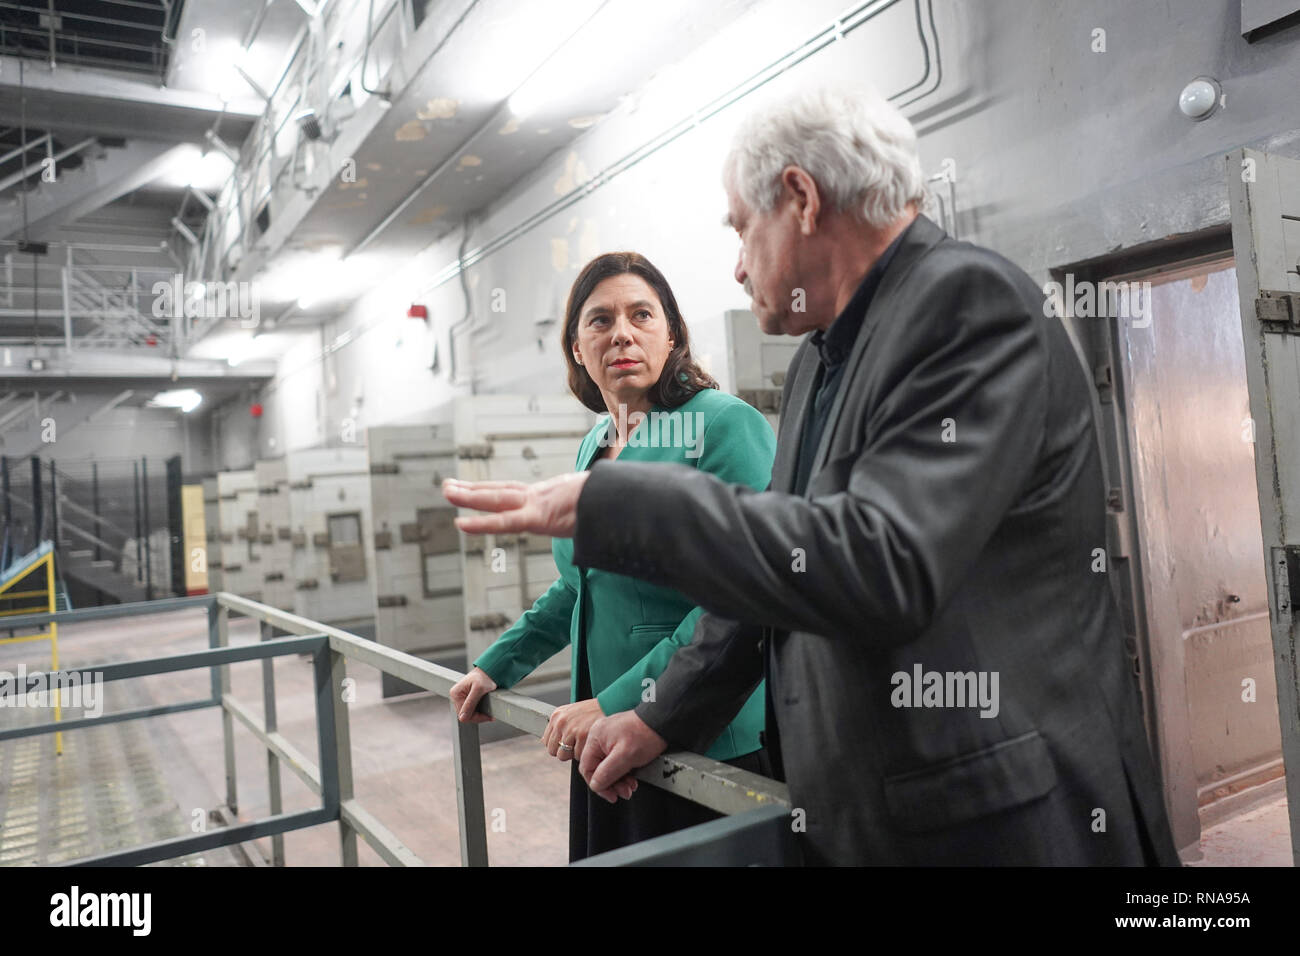 Berlin, Germany. 18th Feb, 2019. Sandra Scheeres (l, SPD), Berlin's senator for education, and the 70-year-old contemporary witness Michael Brack, open an extracurricular place of learning in the former East German police prison Keibelstraße. According to the Senator, young people there will be able to deal with state arbitrariness and repression in the GDR in the future. Guided tours of the building are also planned for interested visitors. The prison stood empty for years, the use had been struggled for a long time. Credit: Jörg Carstensen/dpa/Alamy Live News - Stock Image